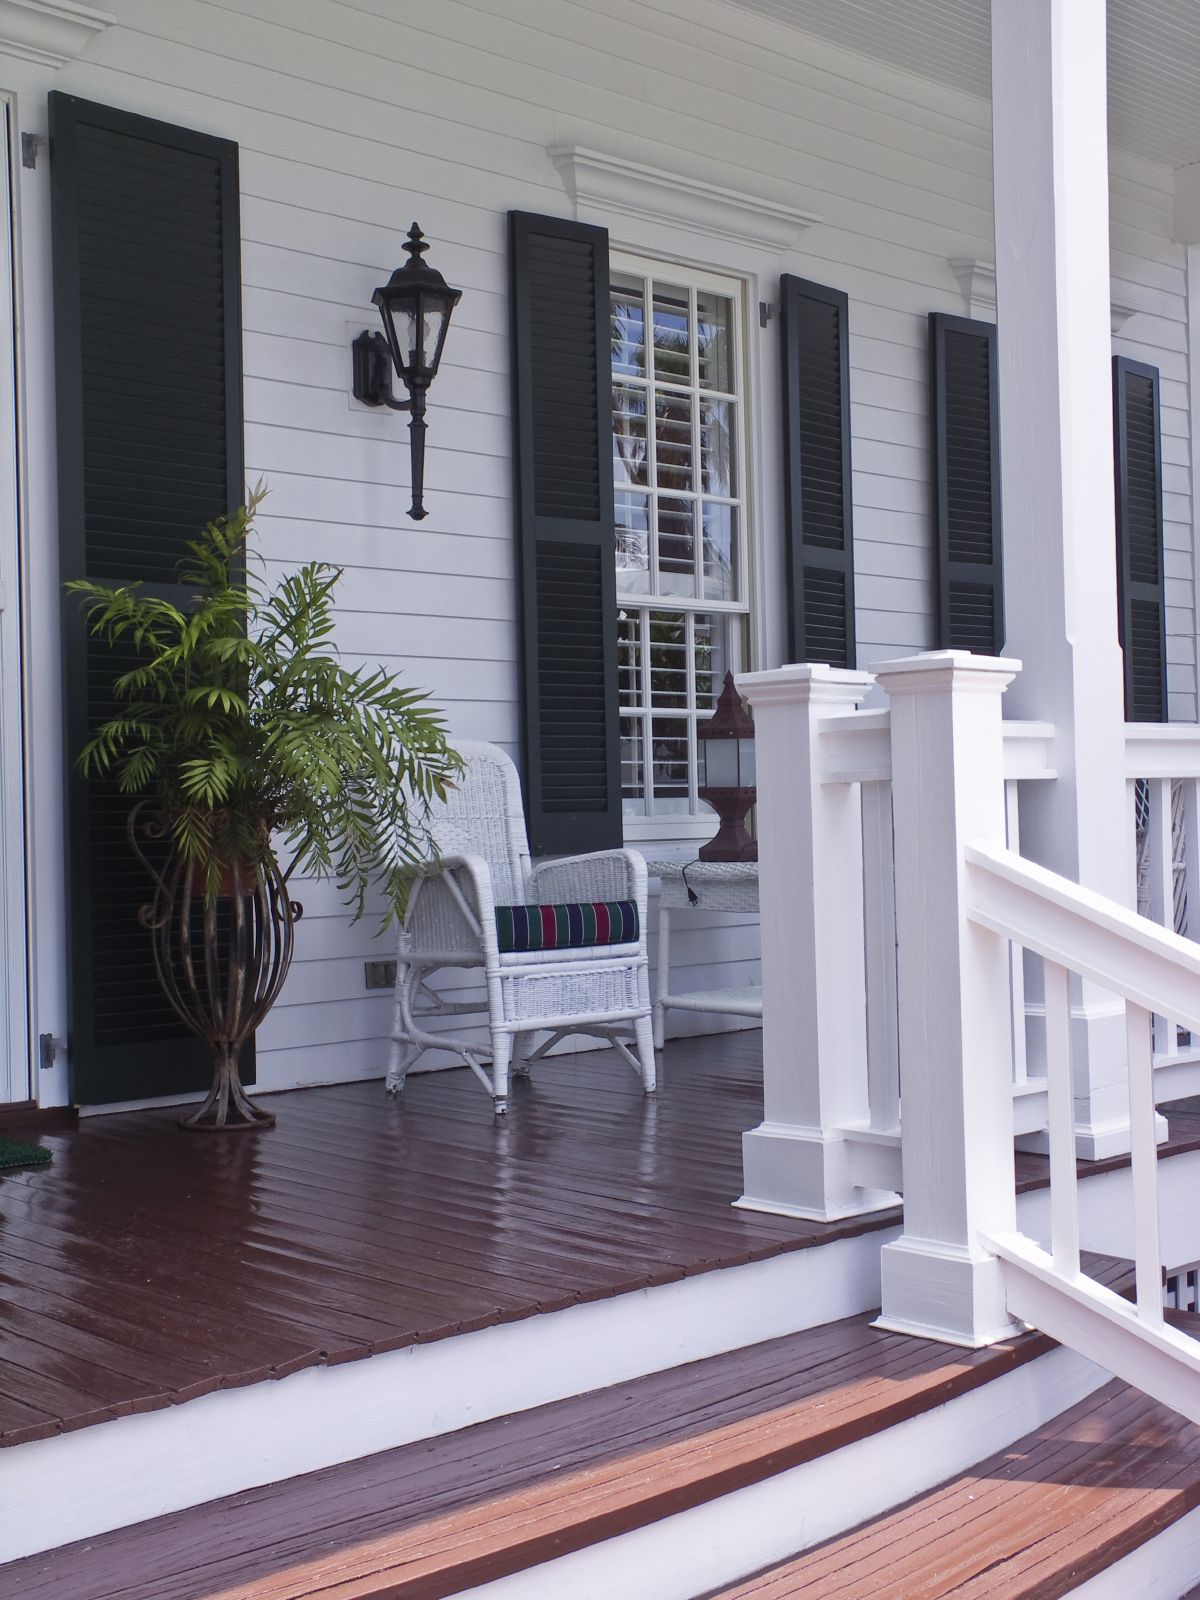 Front Steps Railing Home Design Ideas Pictures Remodel And Decor: 40 Front Porch Ideas For 2019 (Pictures)